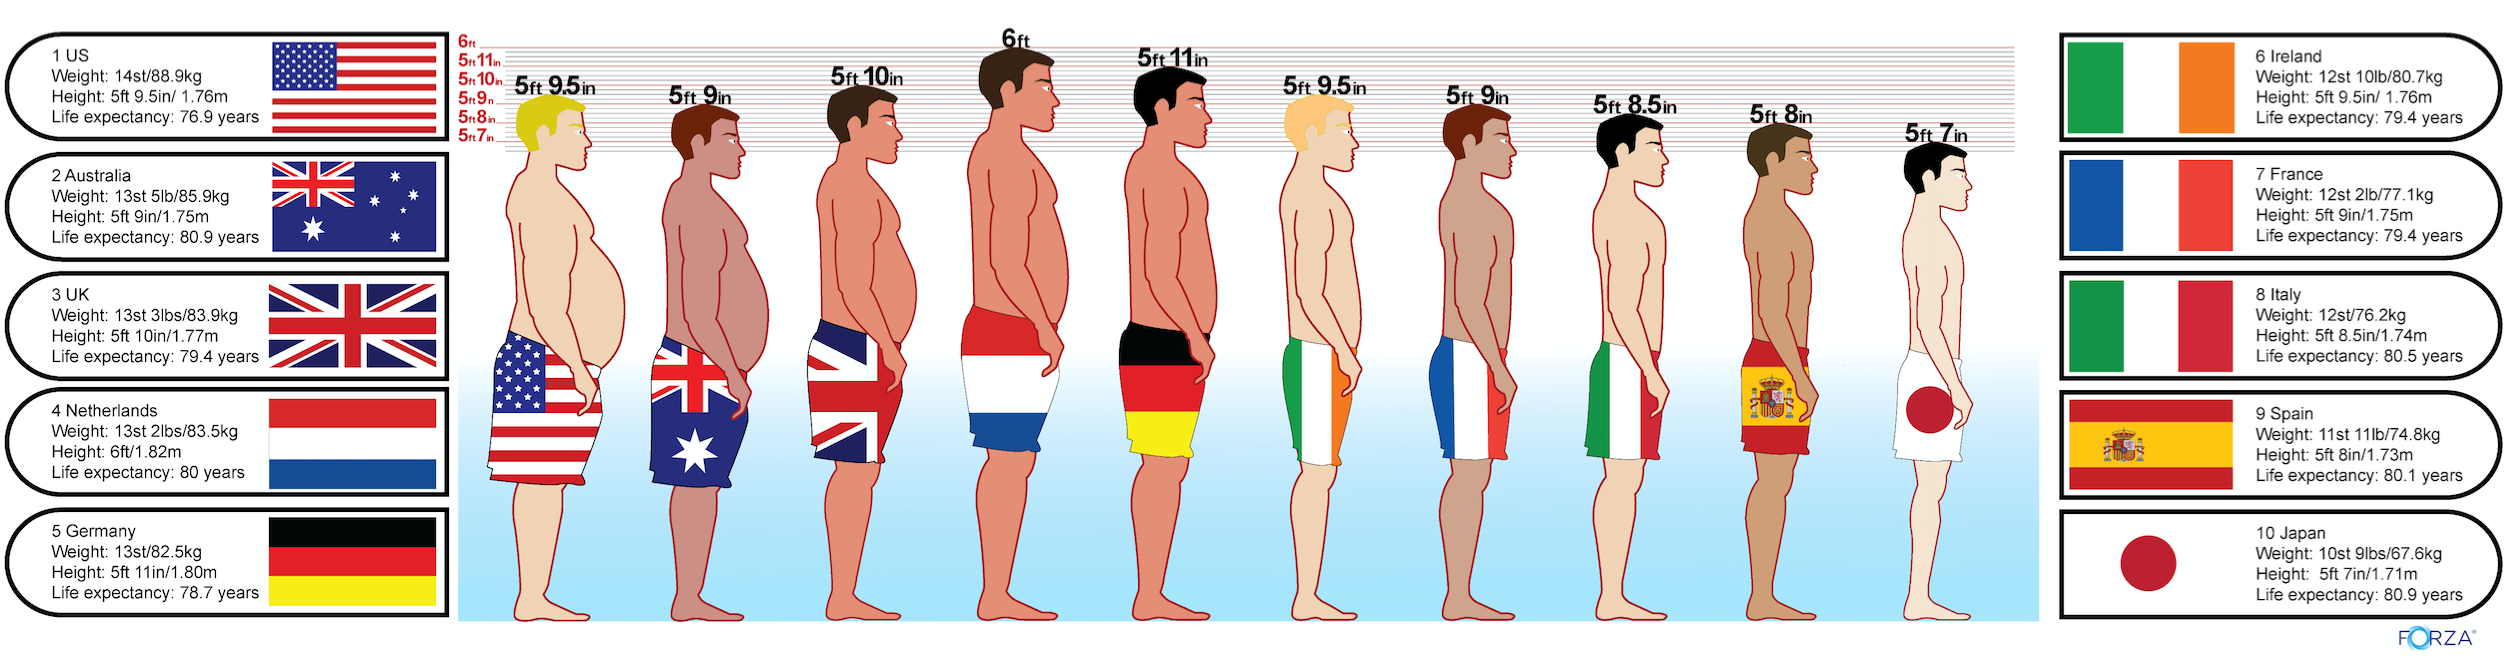 Average height for a us man